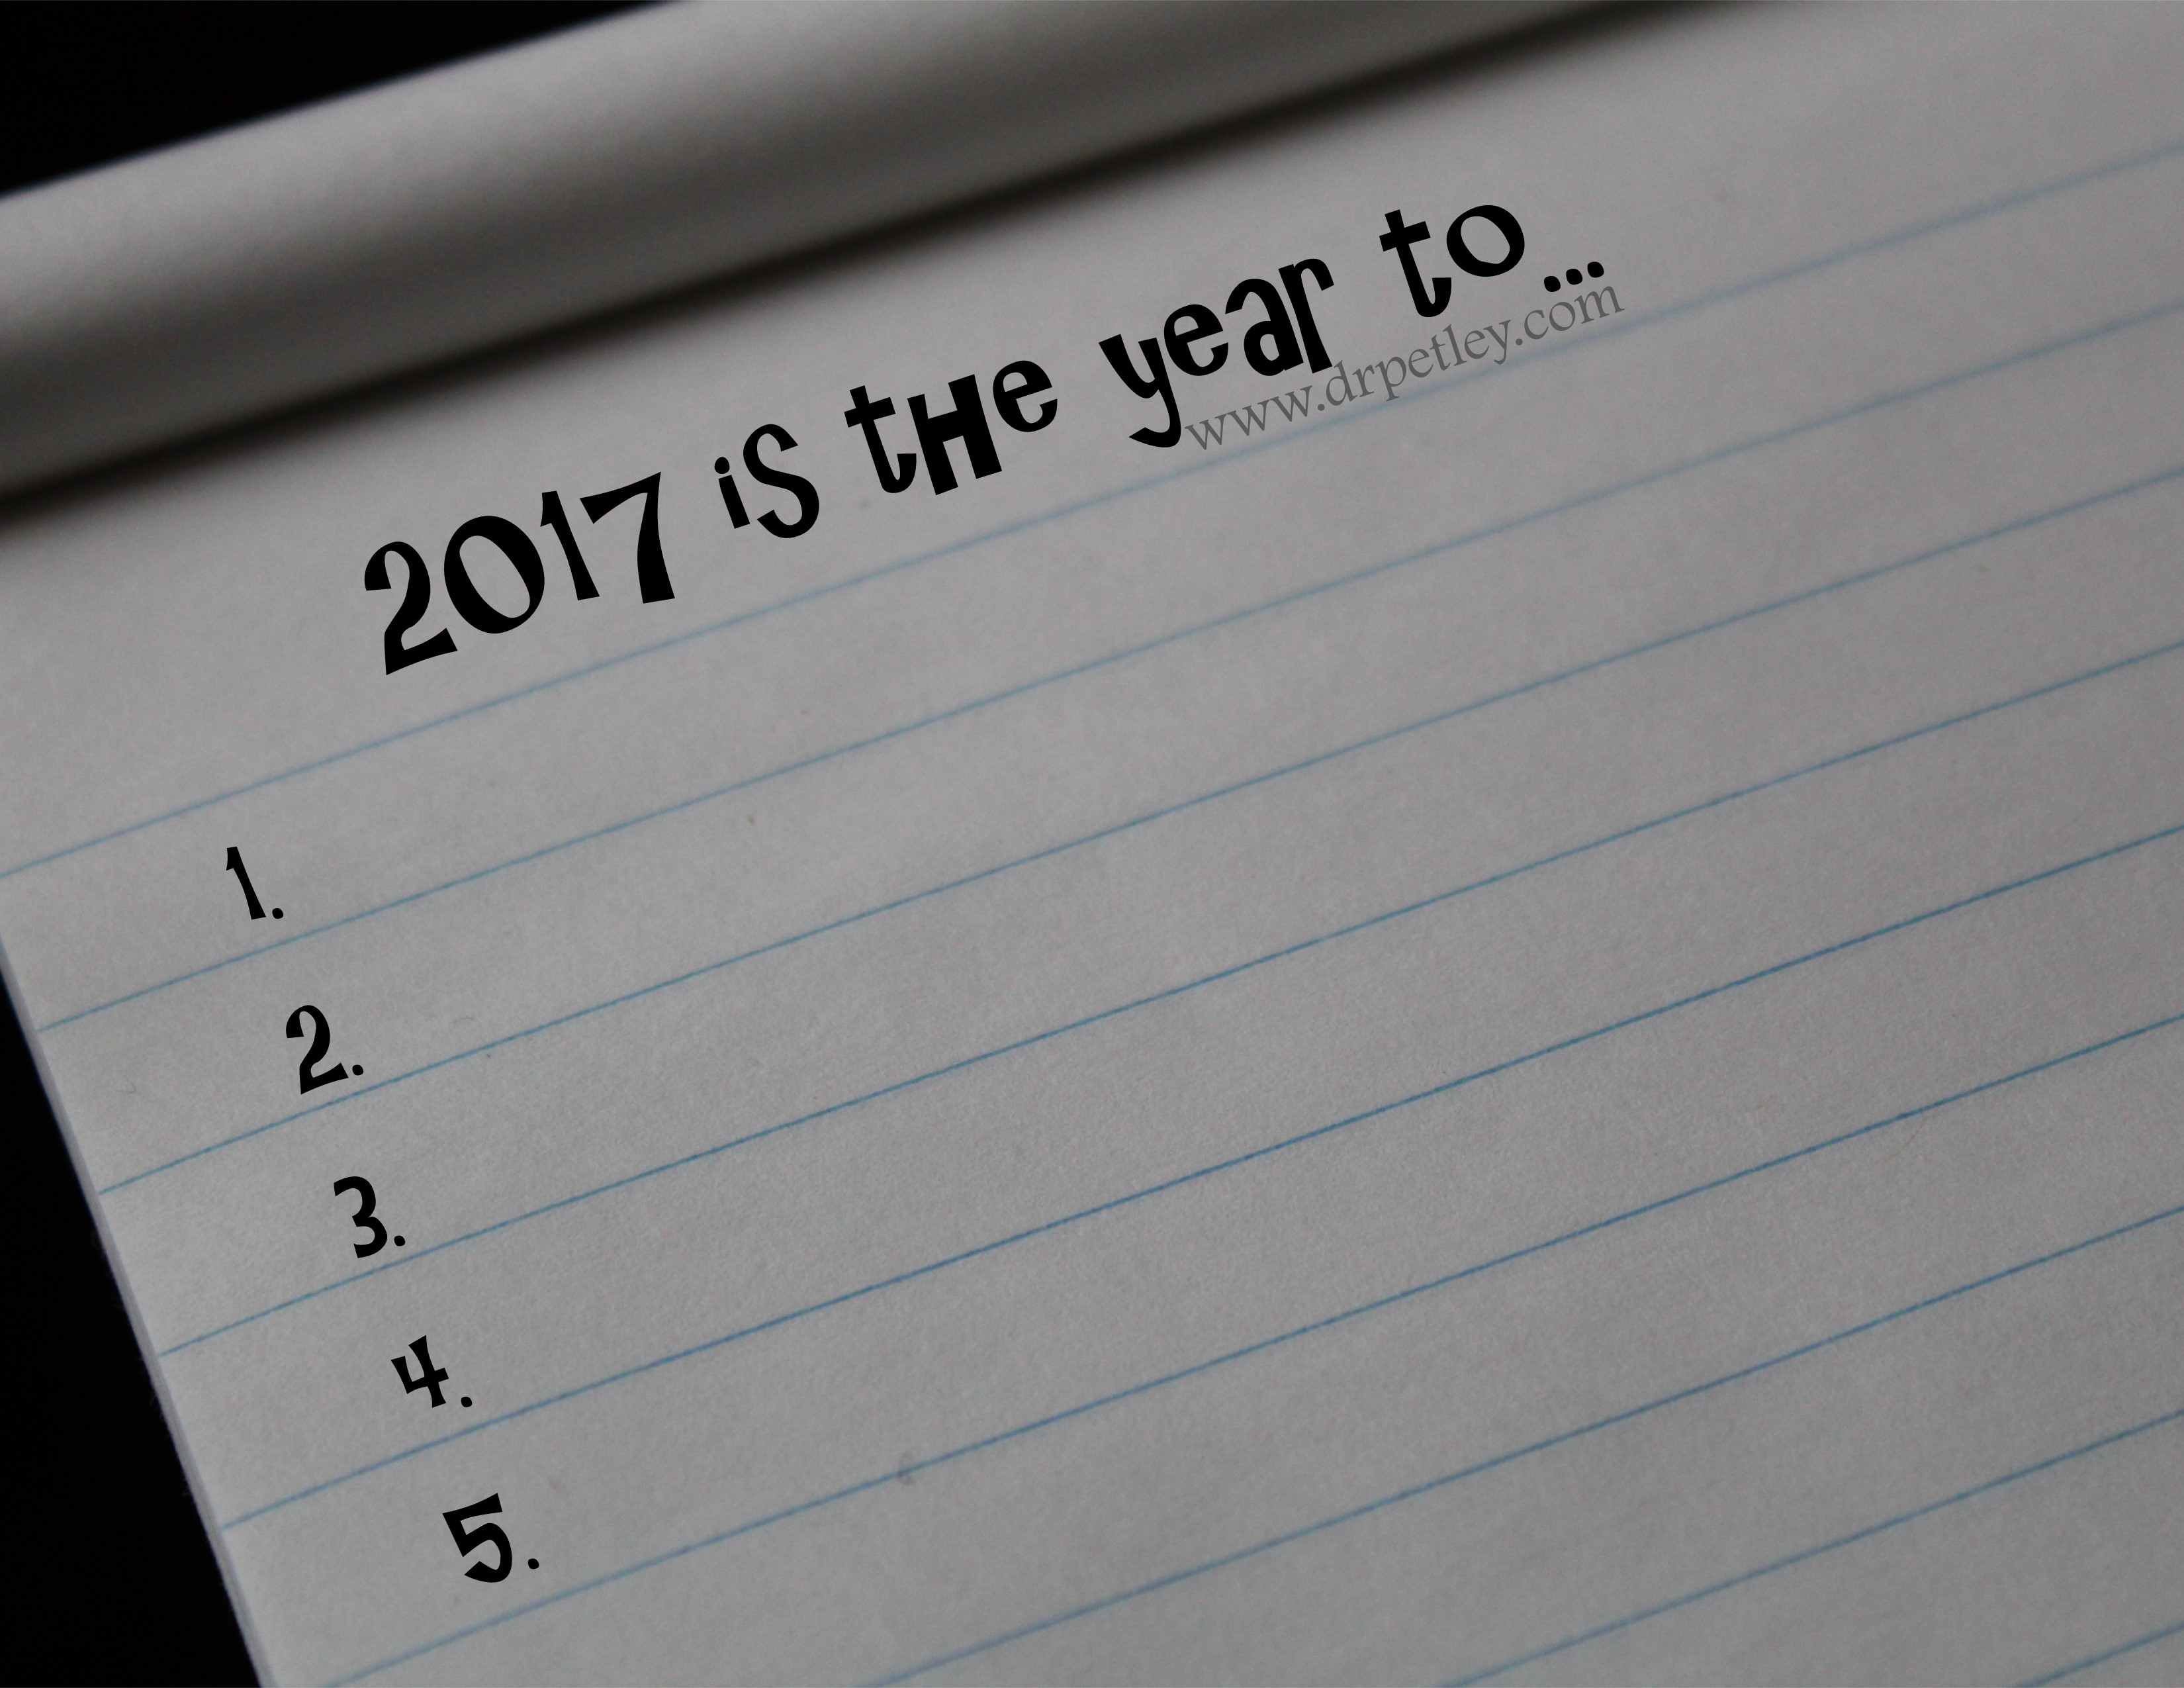 2017: The Year to Be, The Year to Do